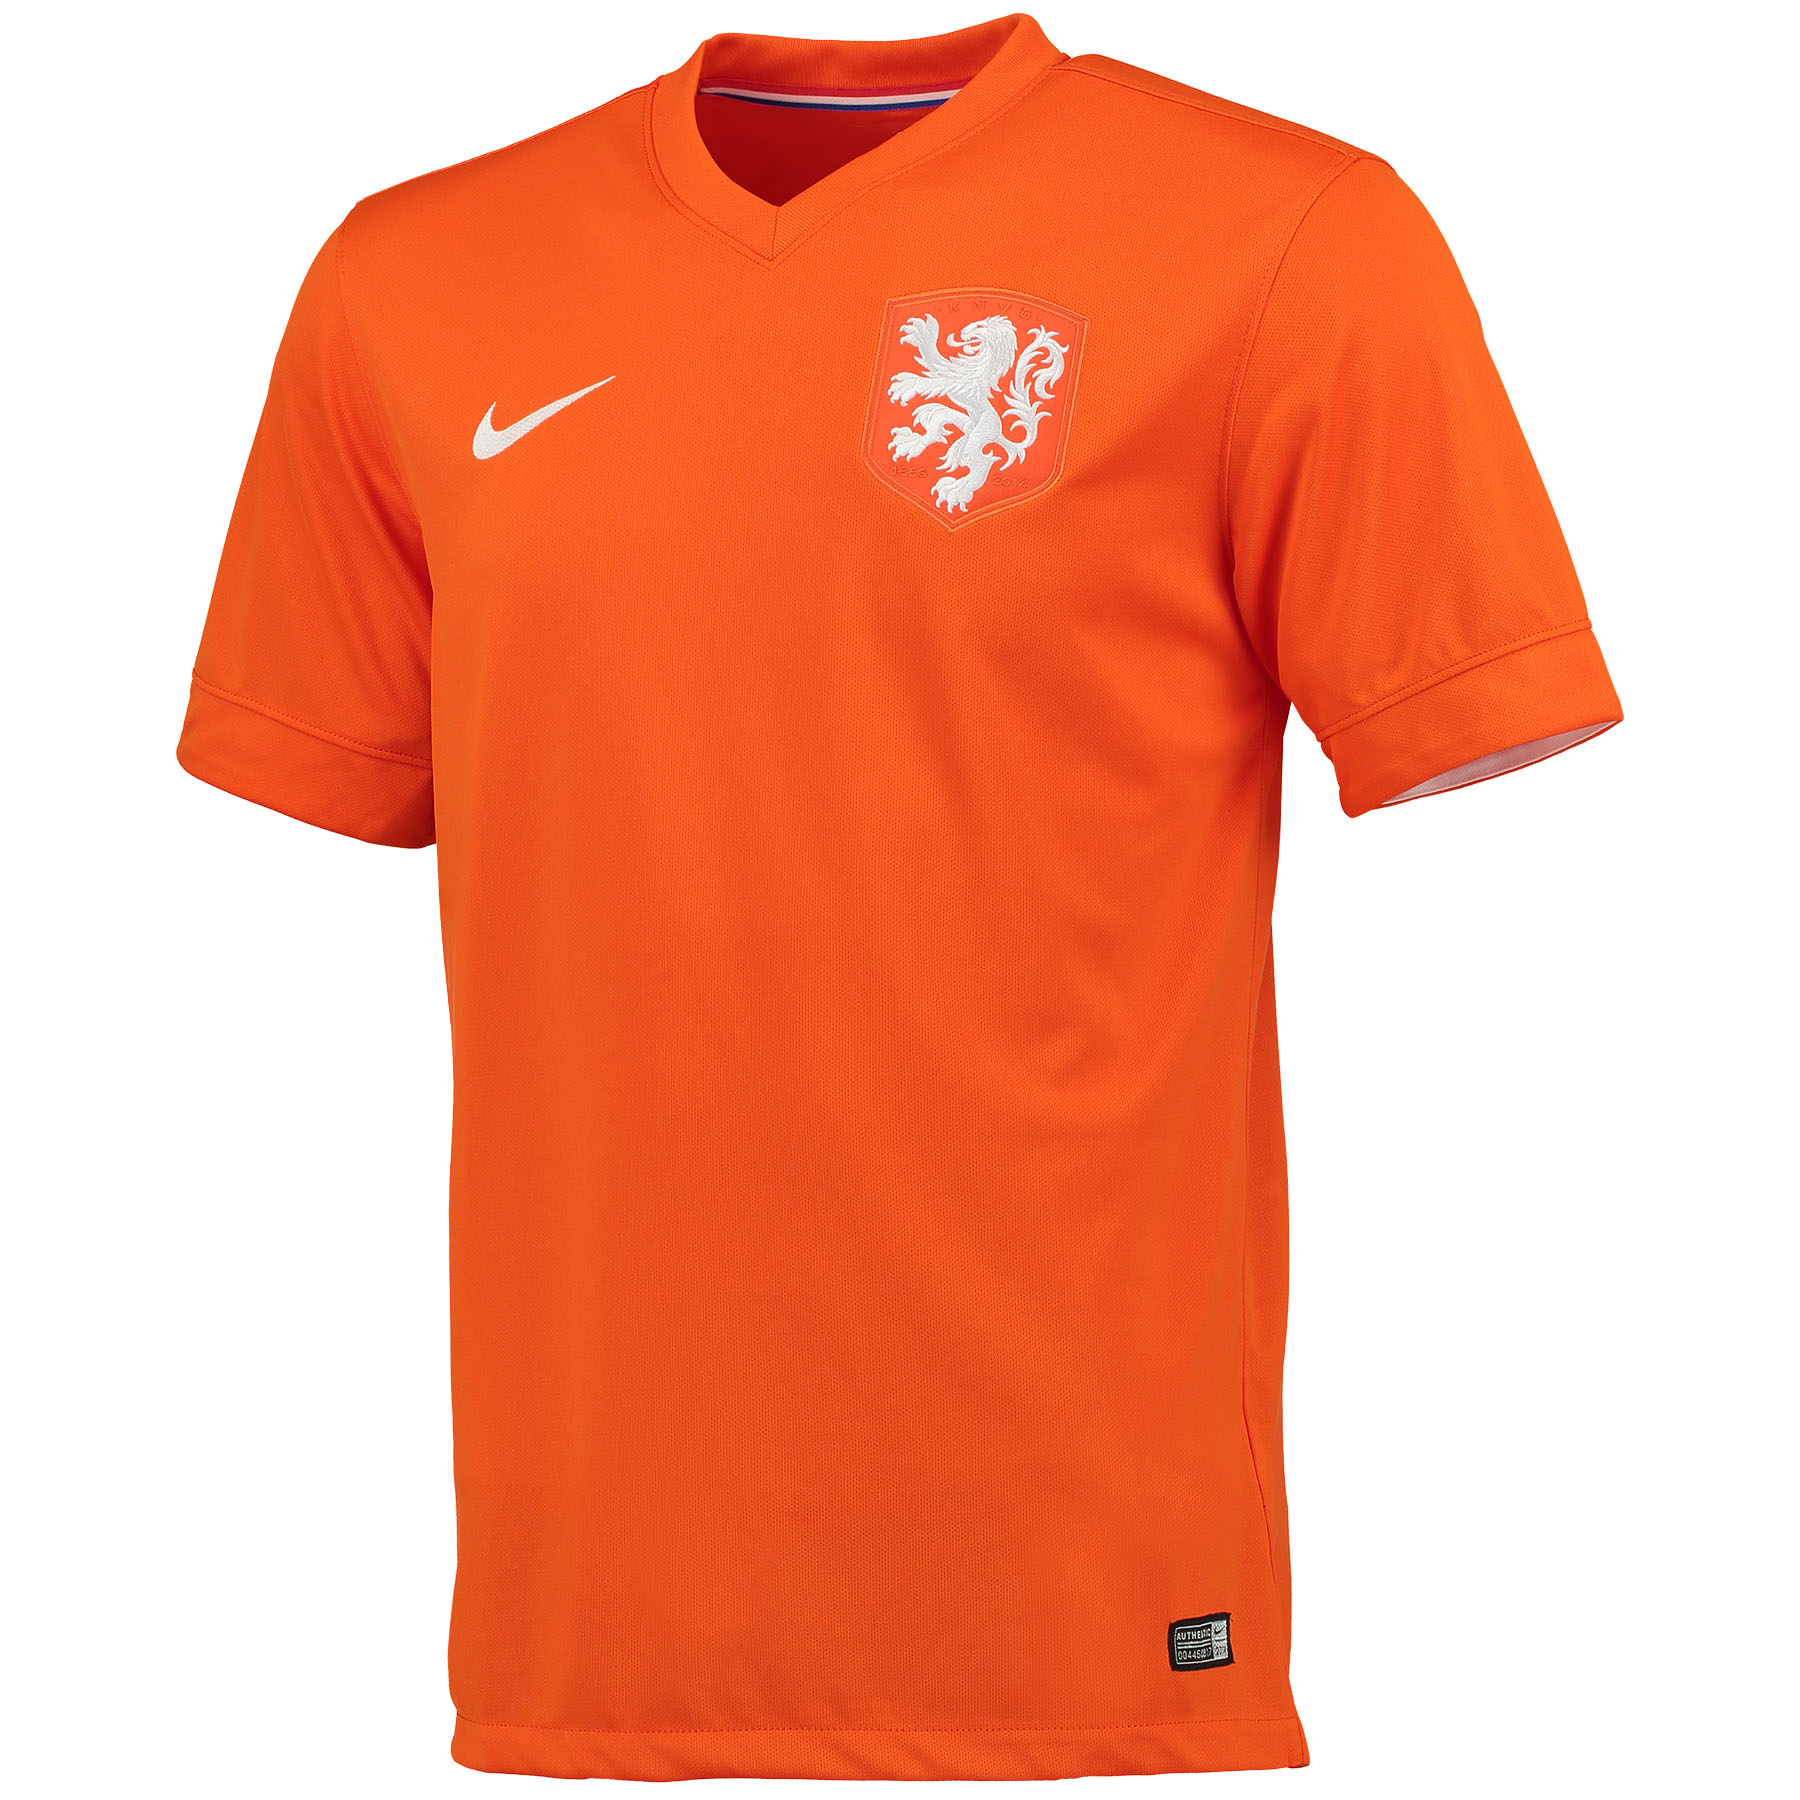 Netherlands Home Shirt 2014/15 Orange